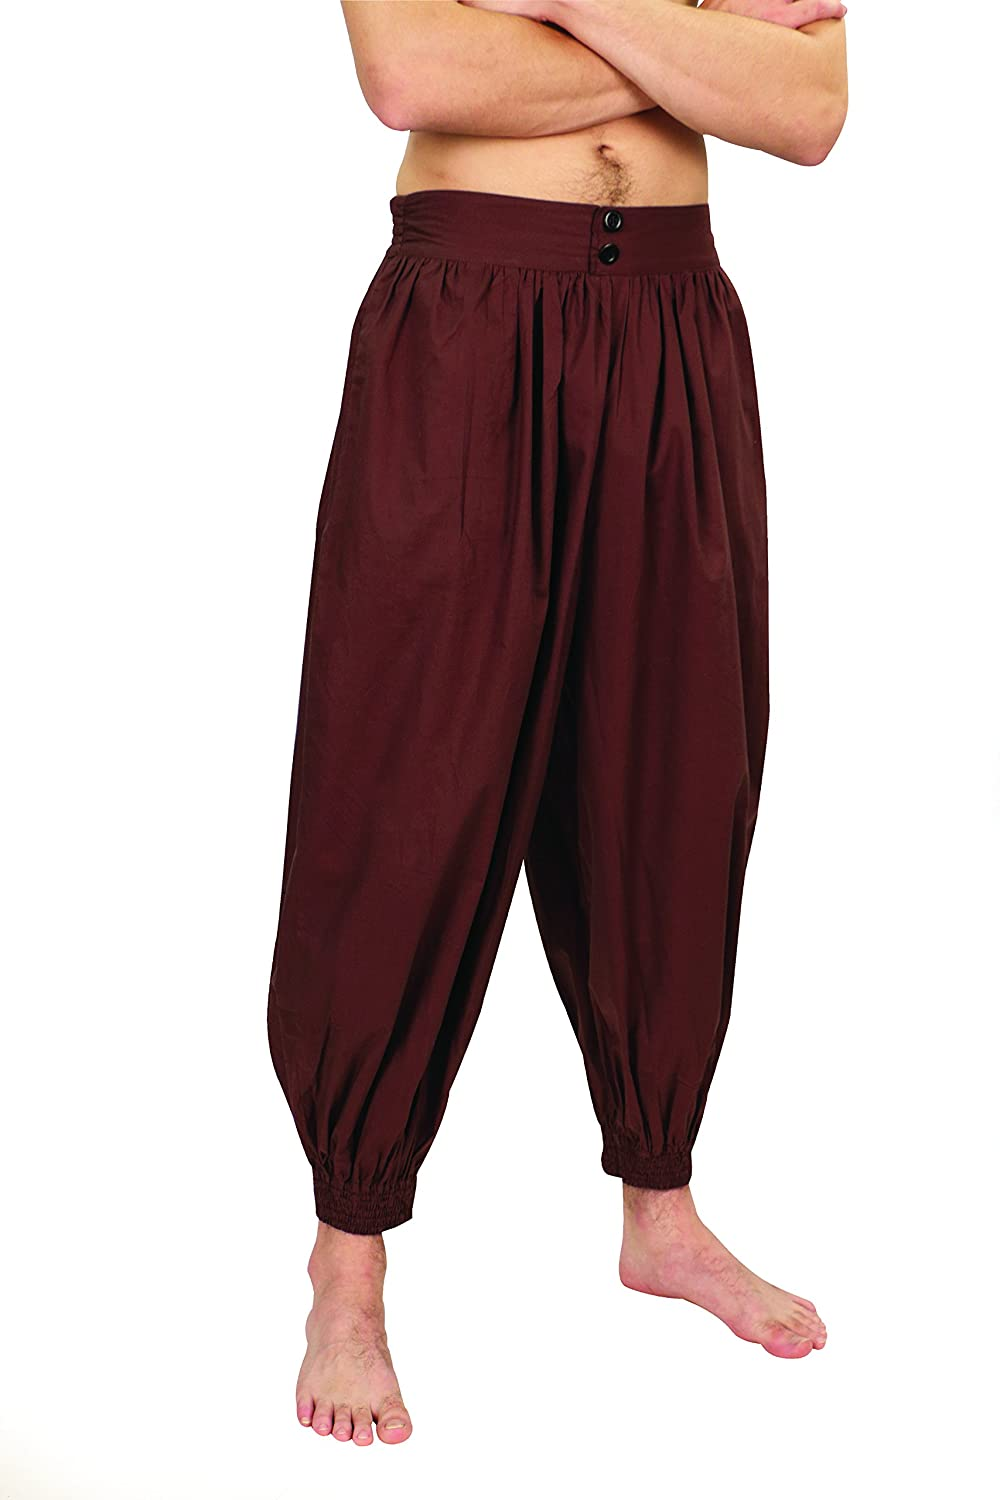 Deluxe Adult Costumes - Brown Madagascar harem pirate pants by Museum Replicas